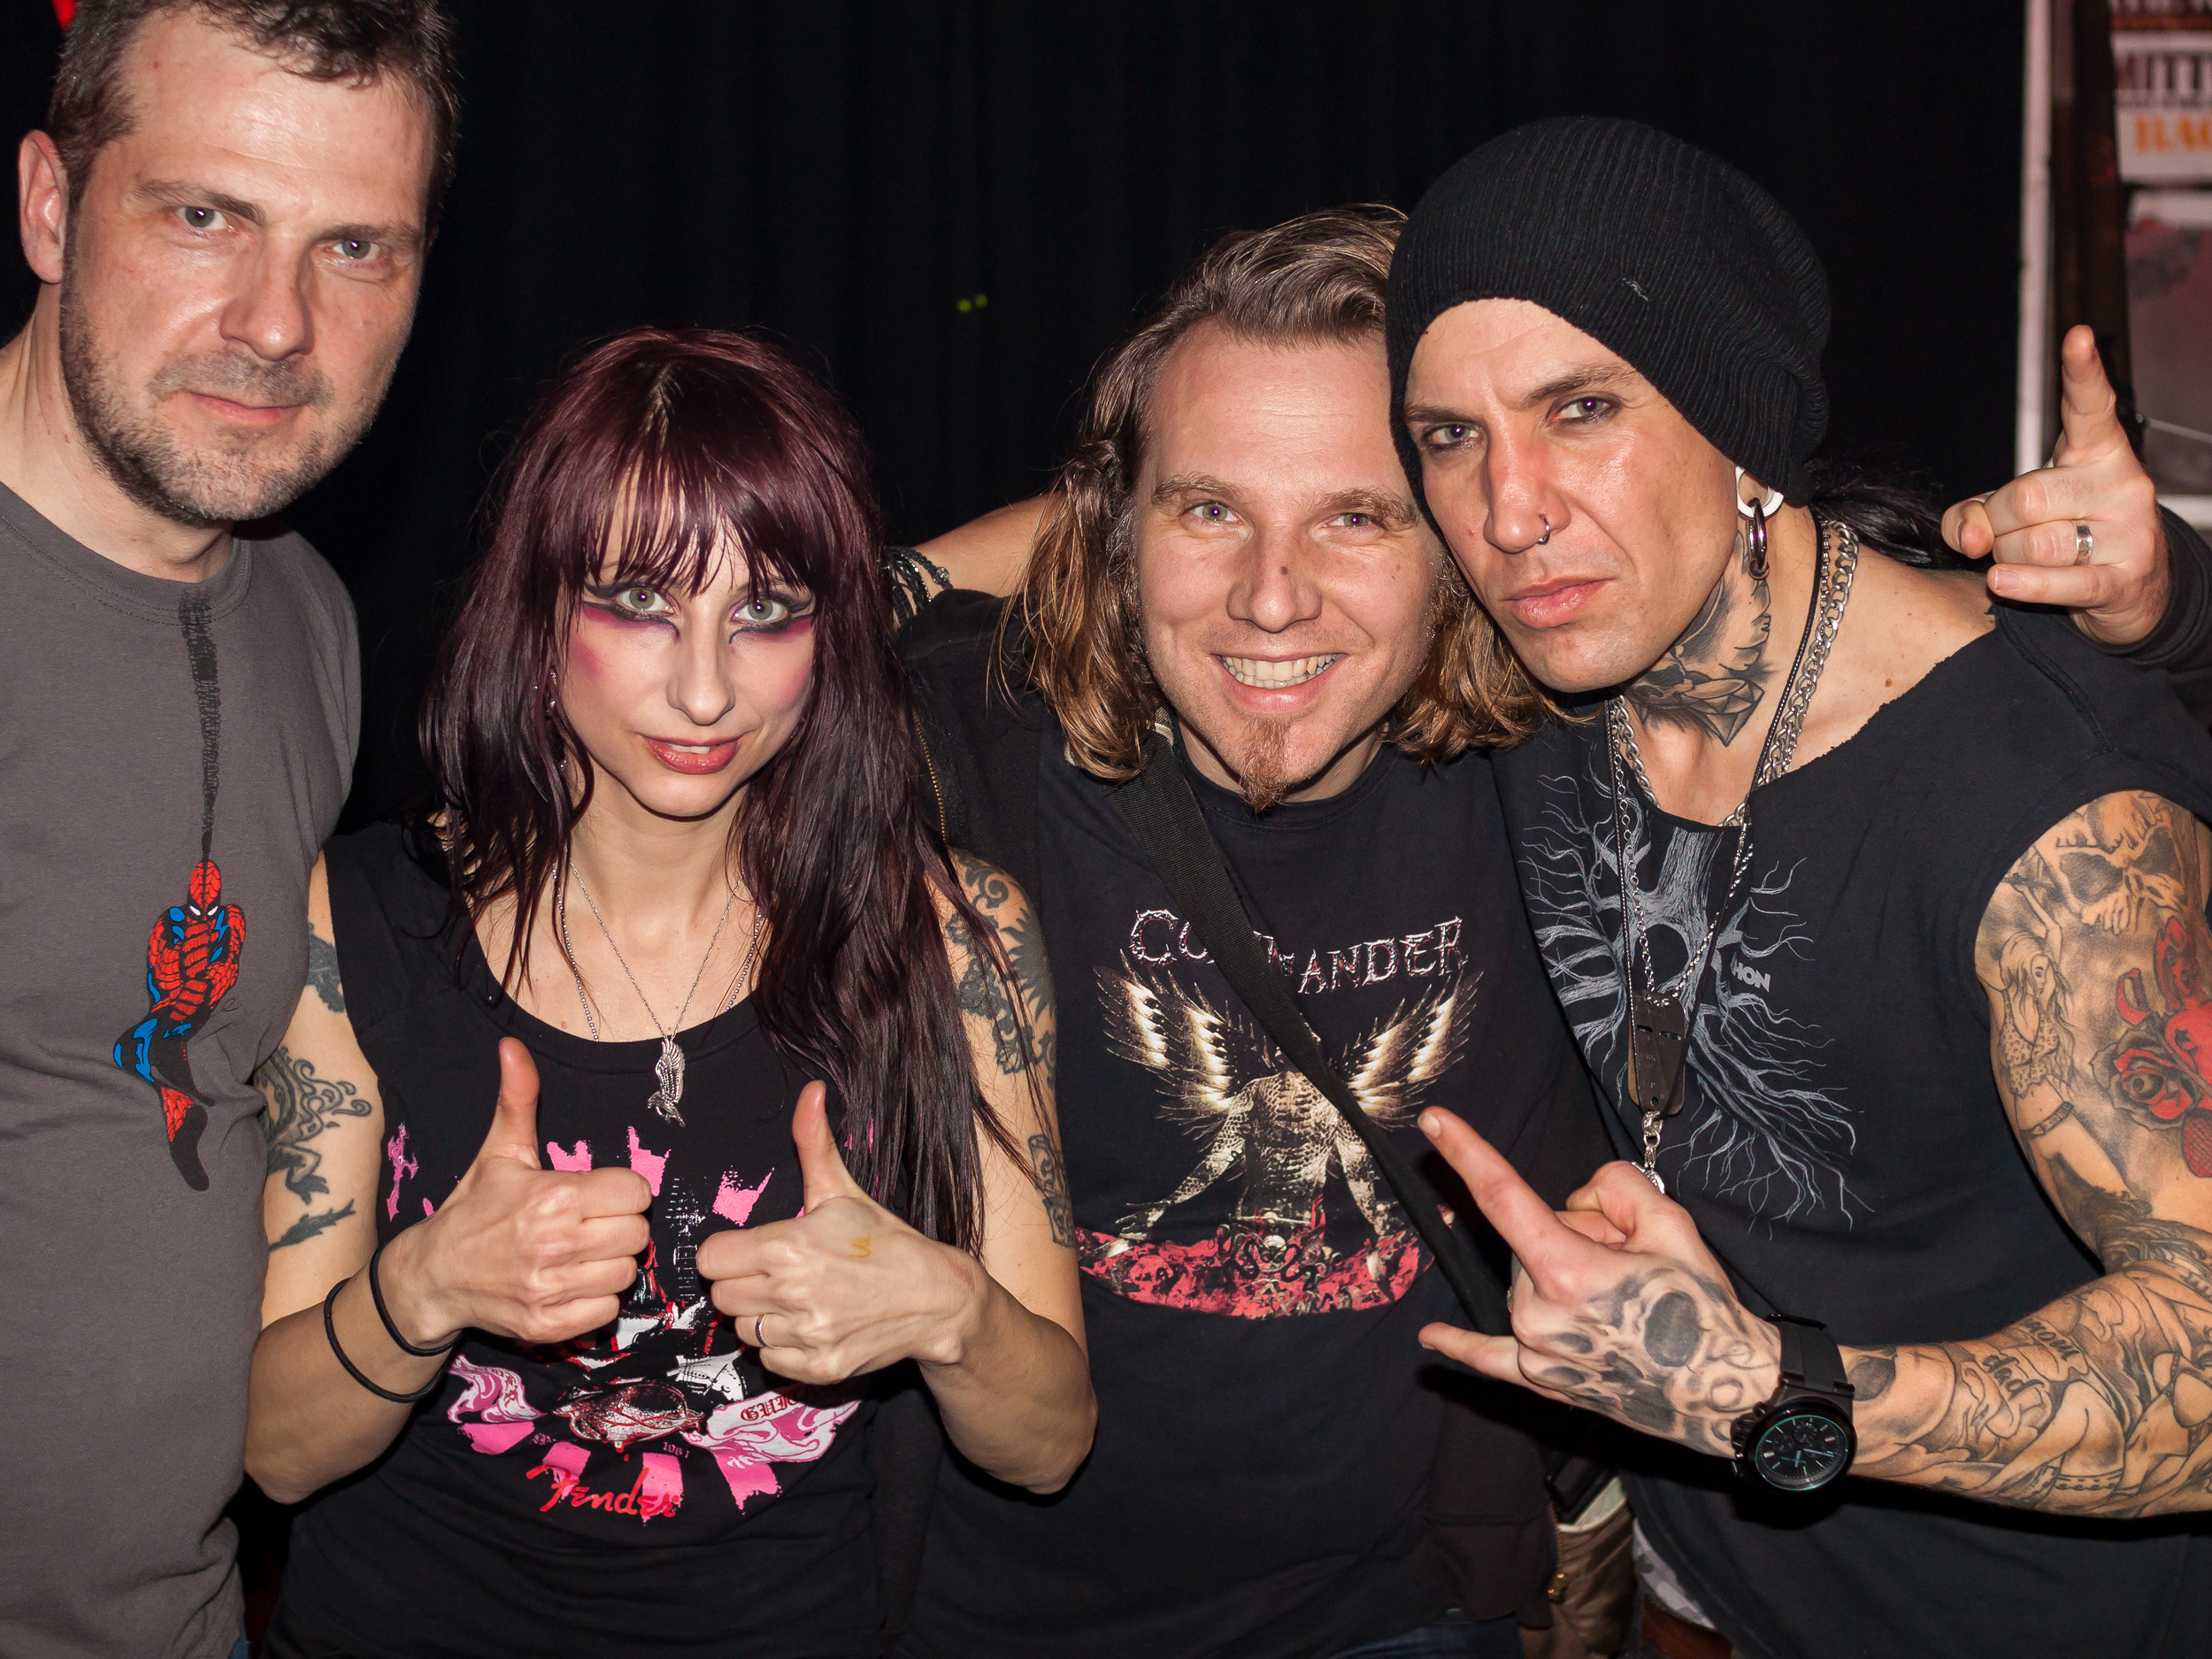 Liv & Dave from Sister Sin